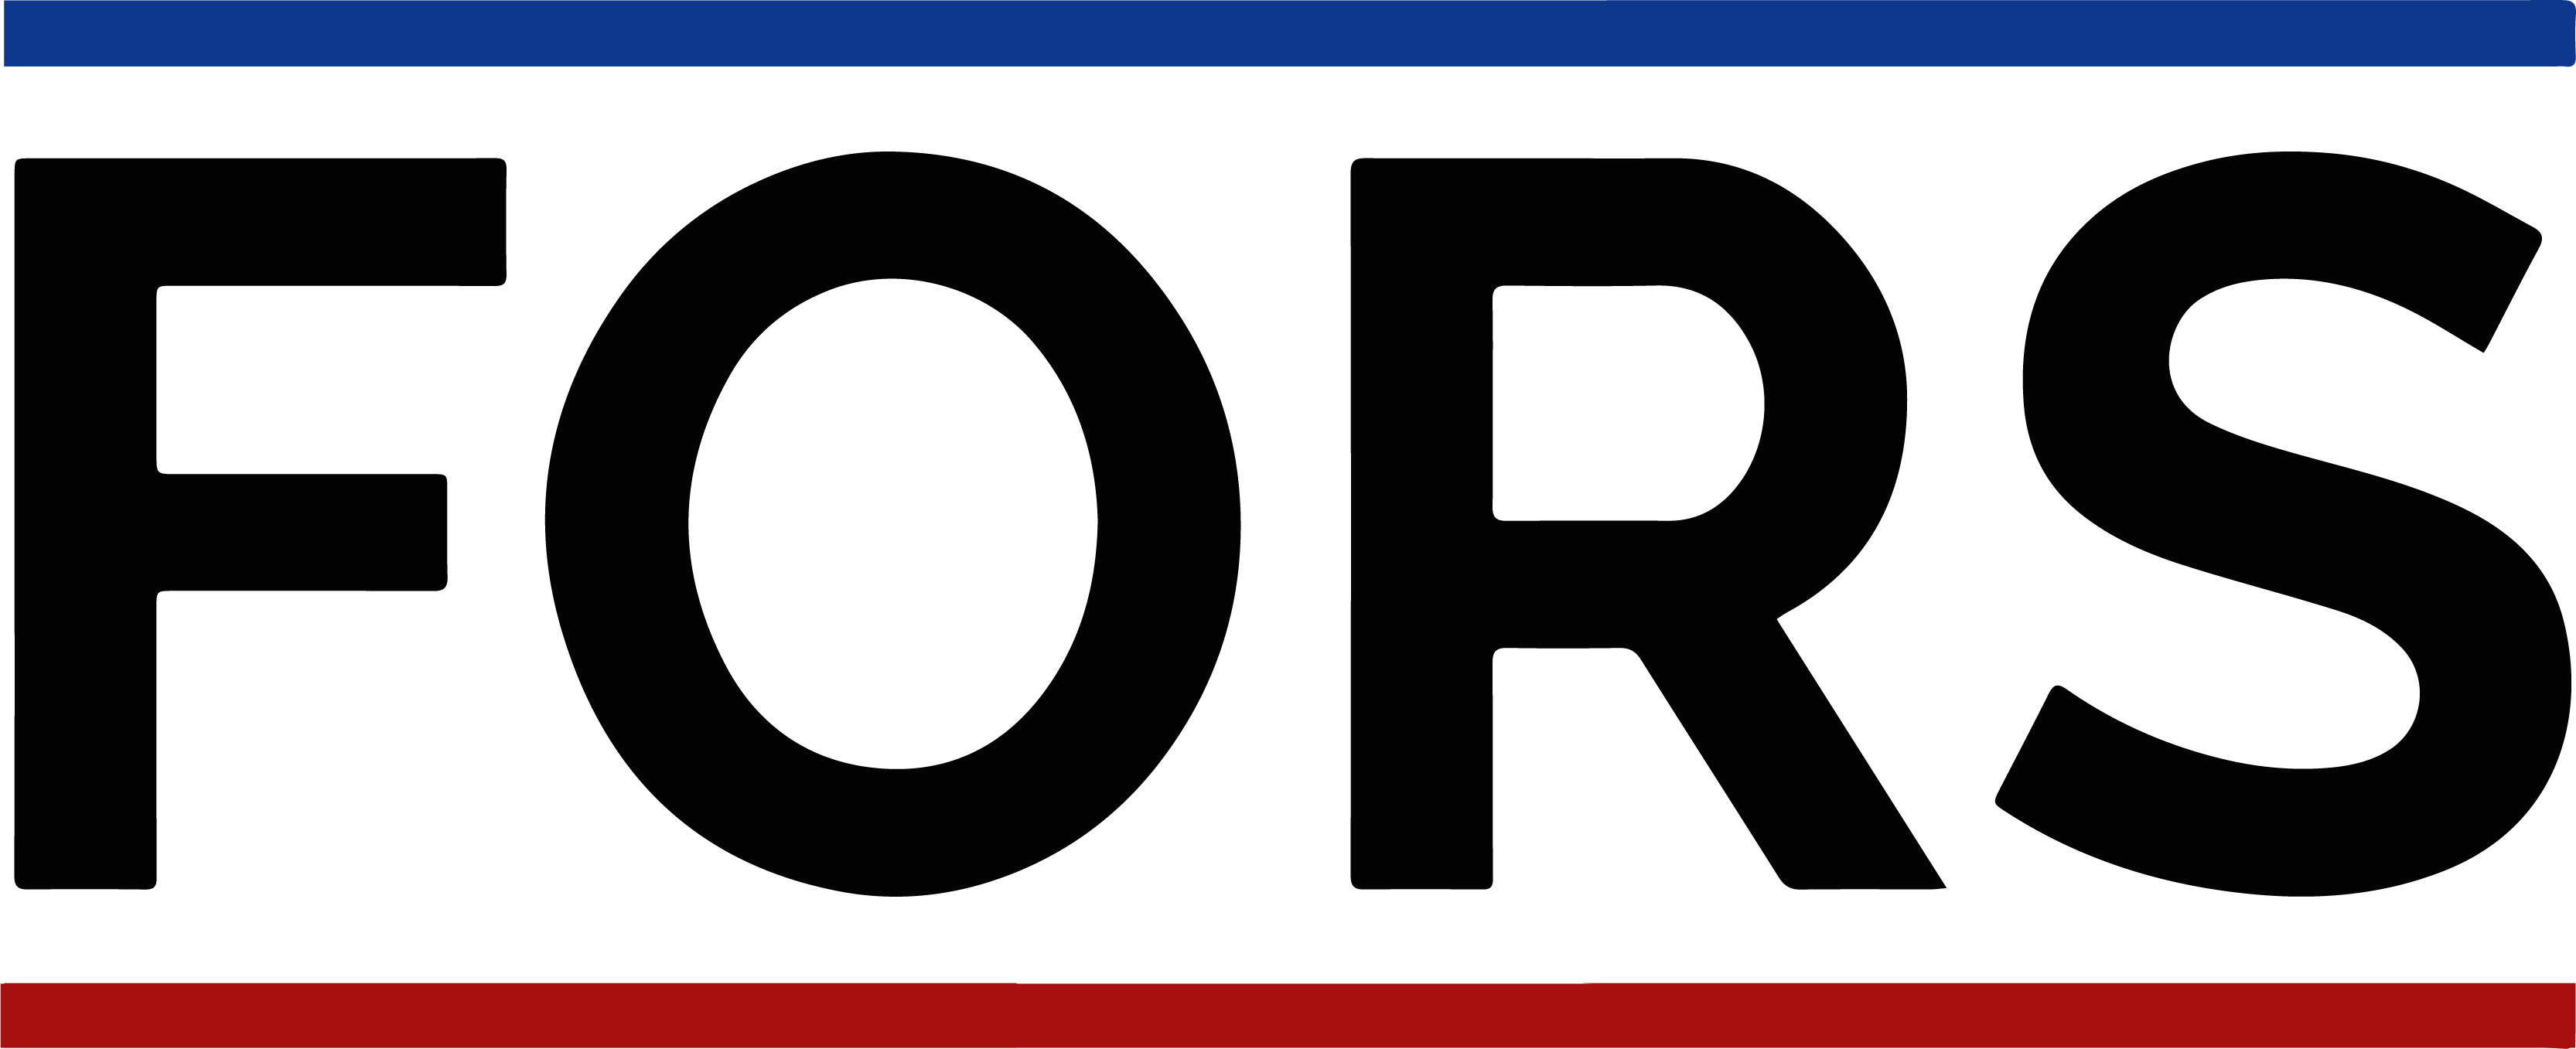 Fors logo 2017 Transparent PNG